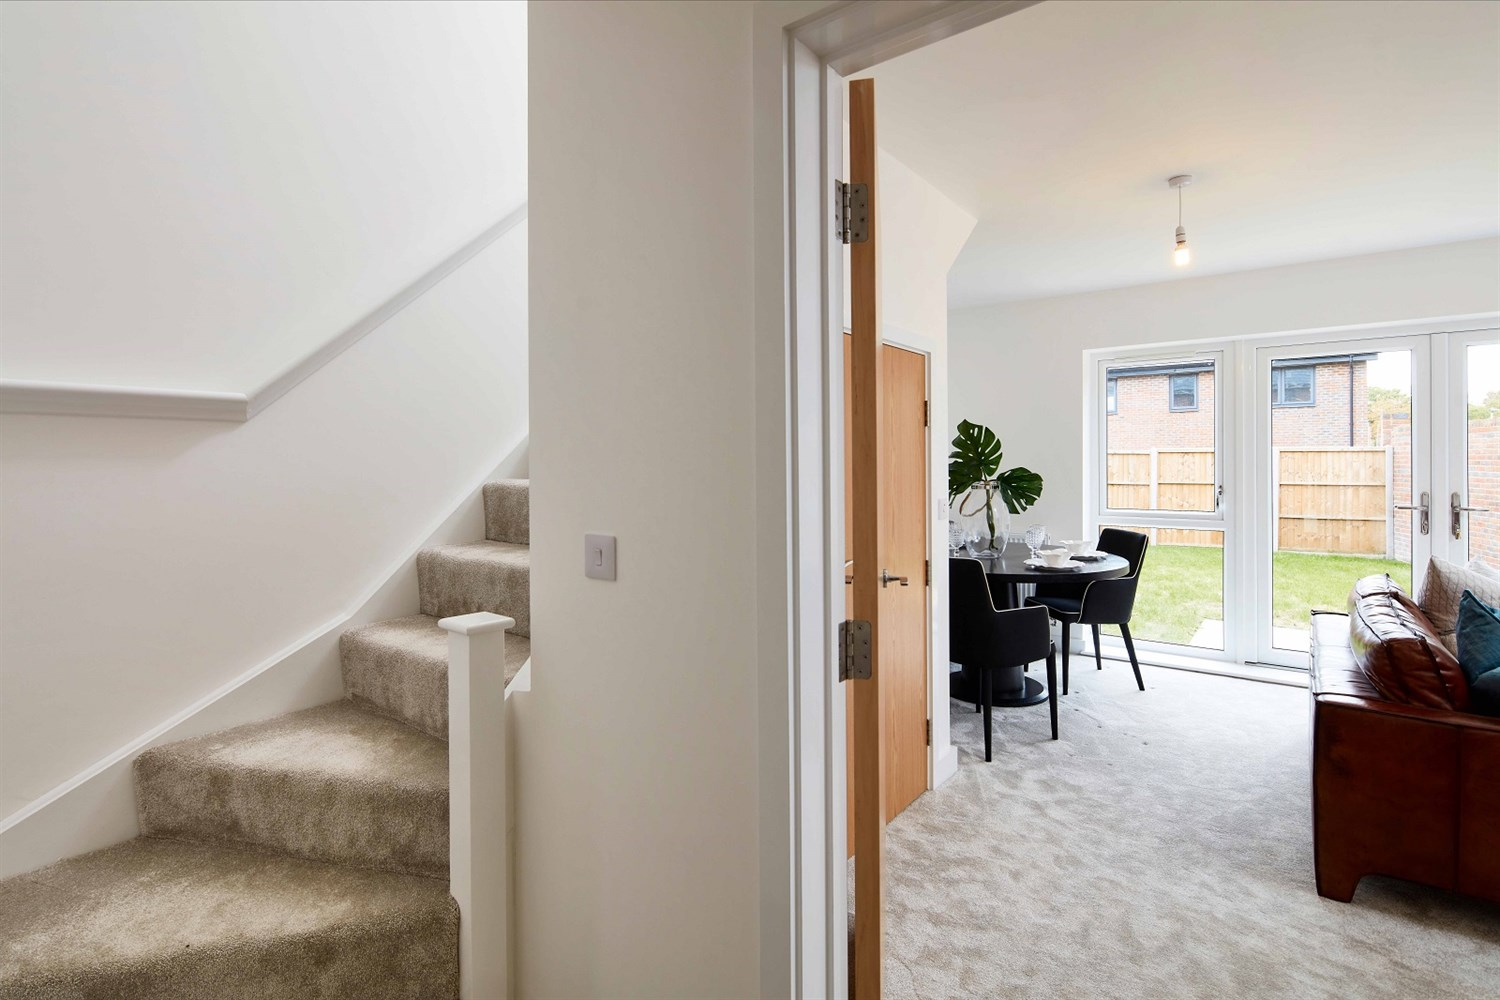 The Glade, 3 bed semi-detached, Waterman's Reach, Arborfield Green, RG2 9LS